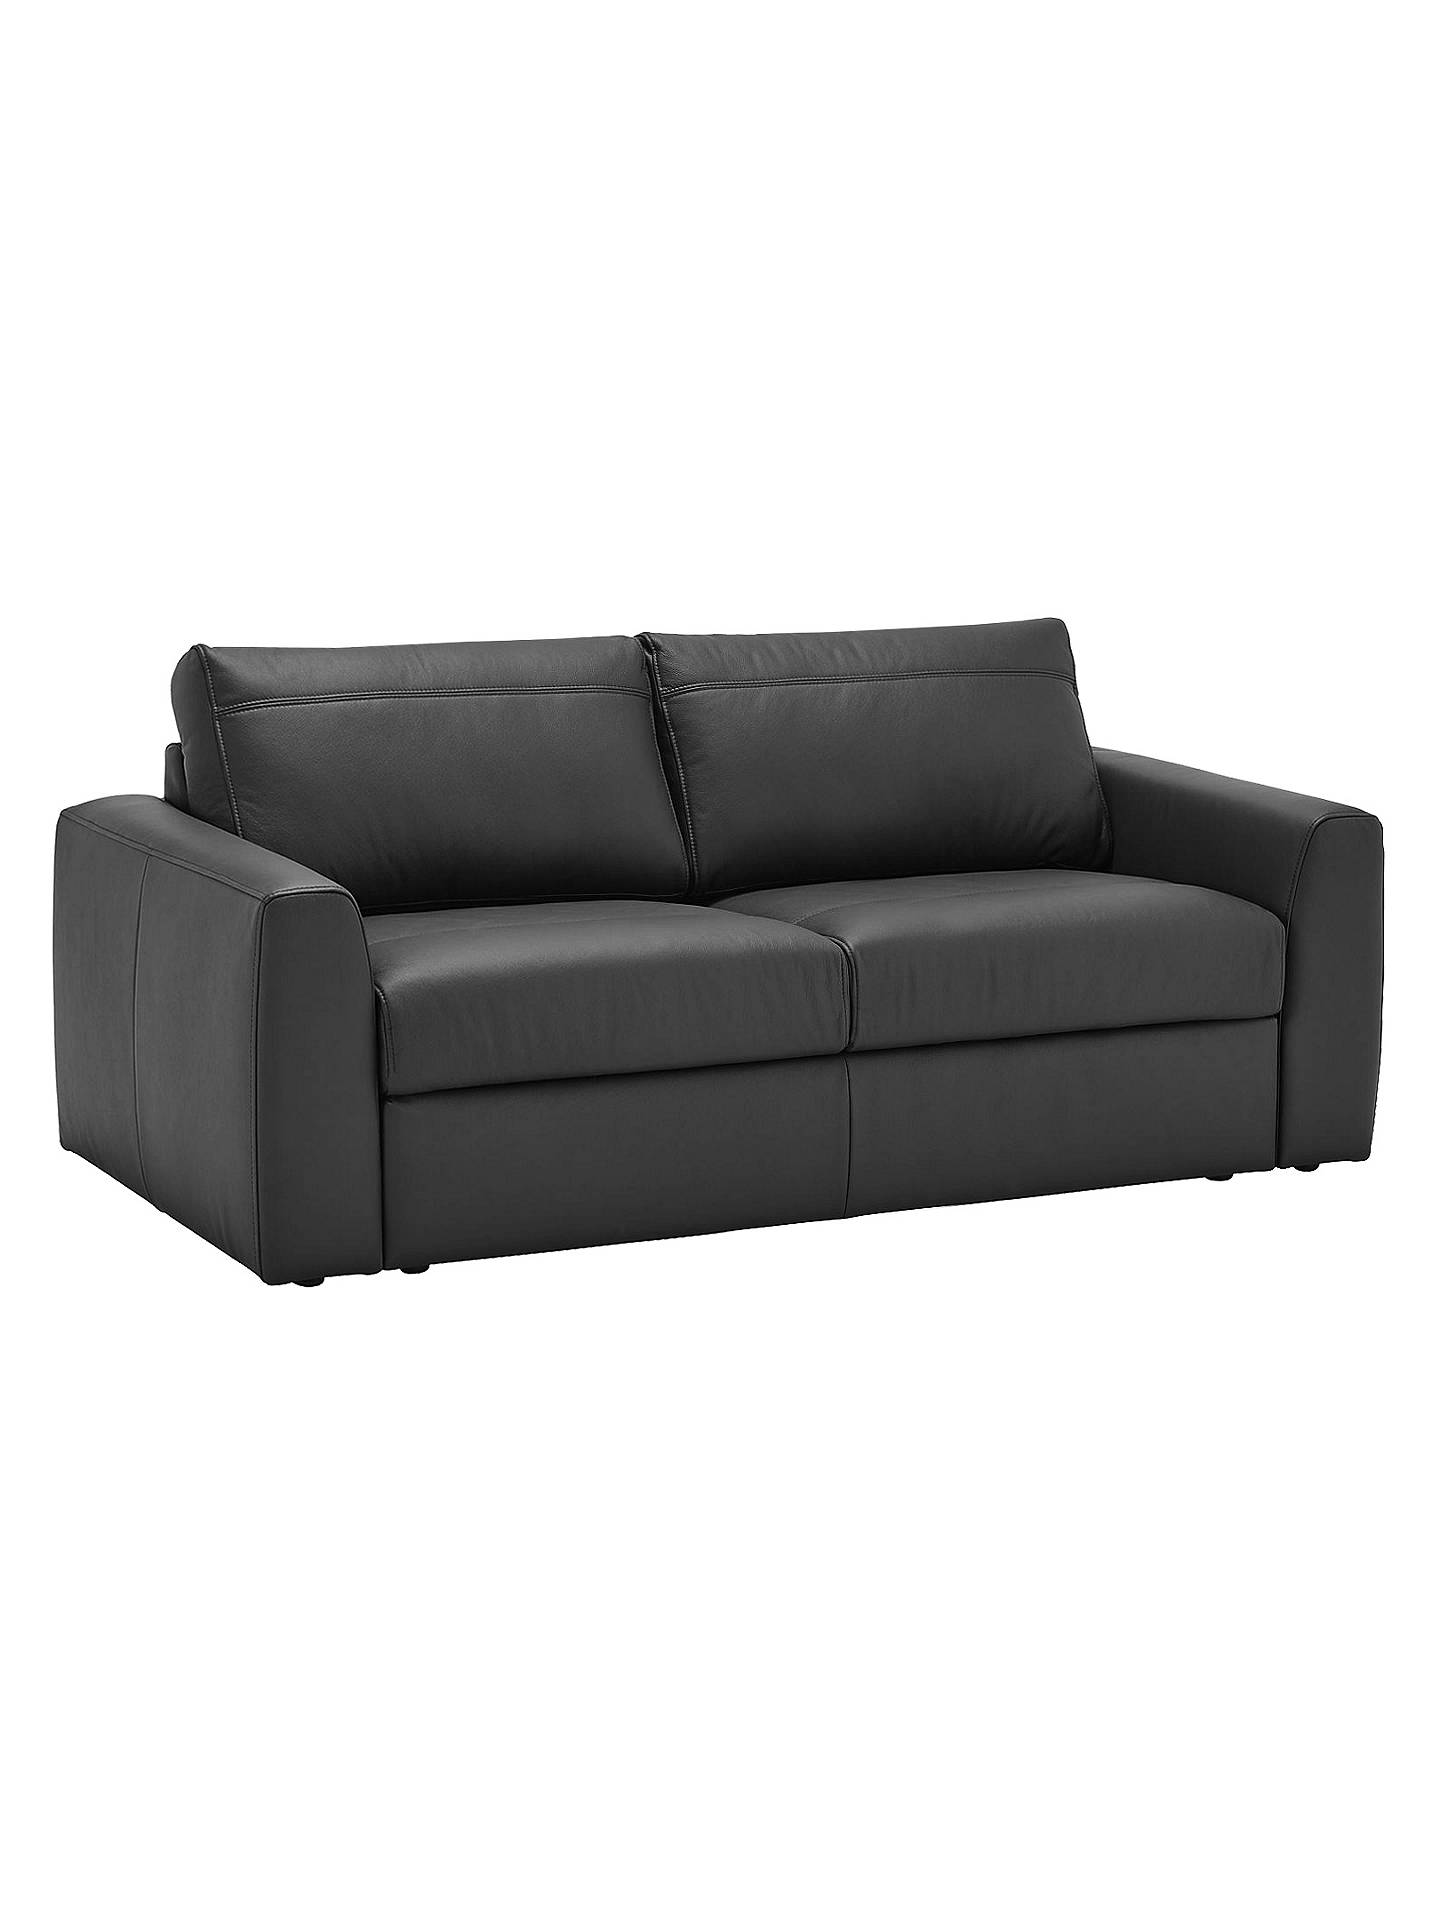 house by john lewis finlay ii sofa bed leather with foam. Black Bedroom Furniture Sets. Home Design Ideas